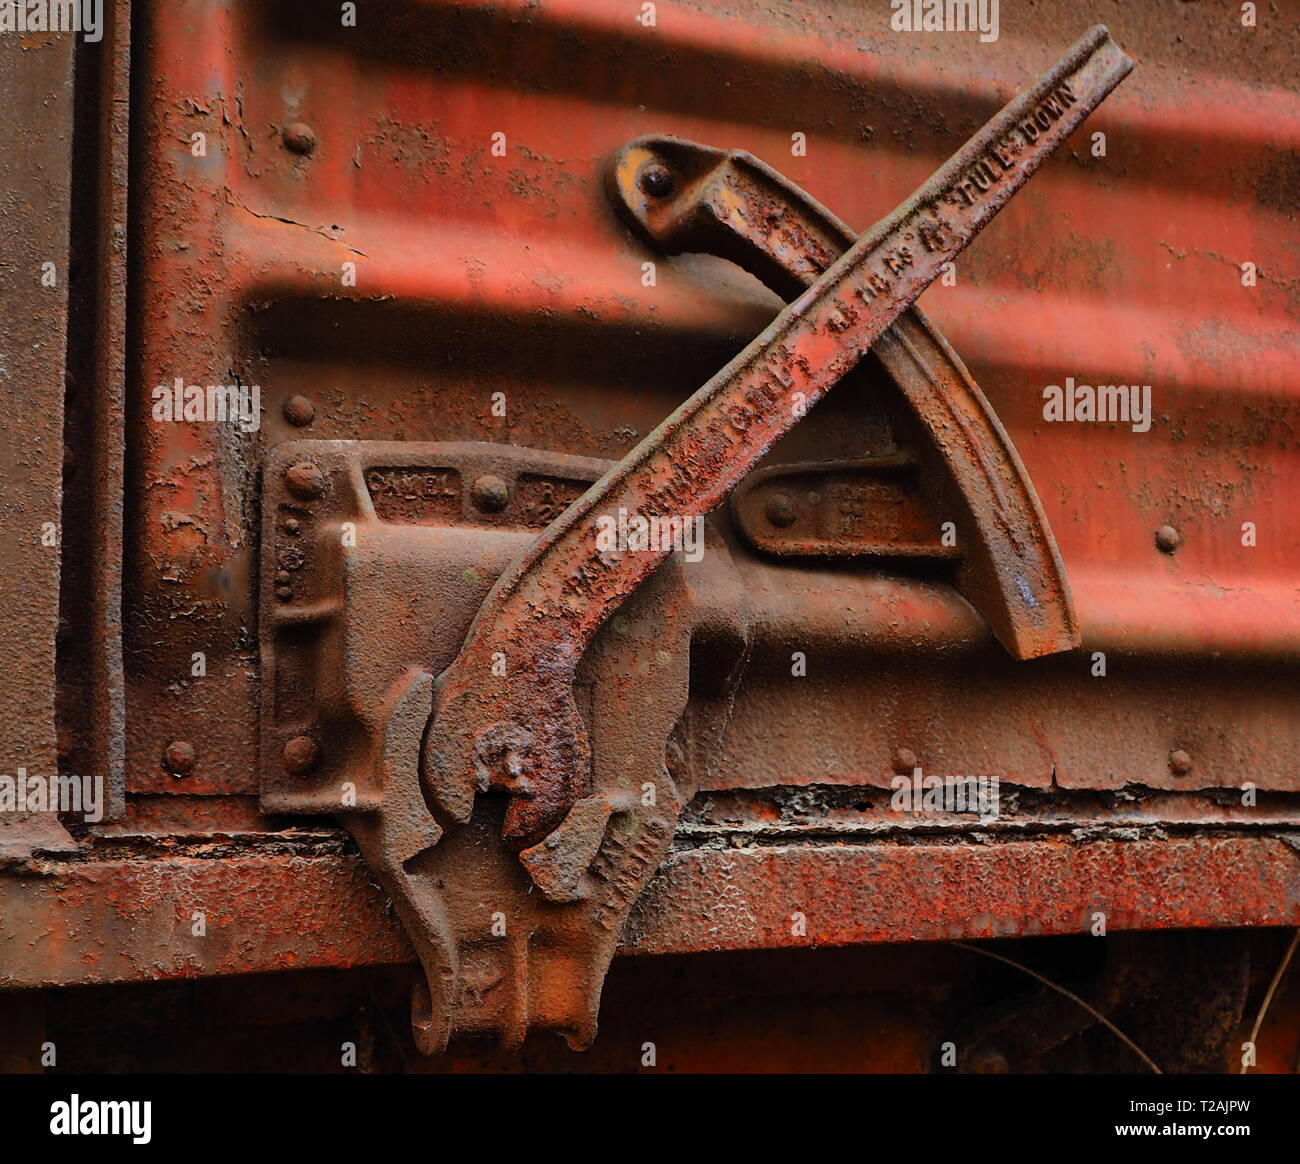 Abandoned railroad train box car locking cam and latch, vintage trail detail close up - Stock Image